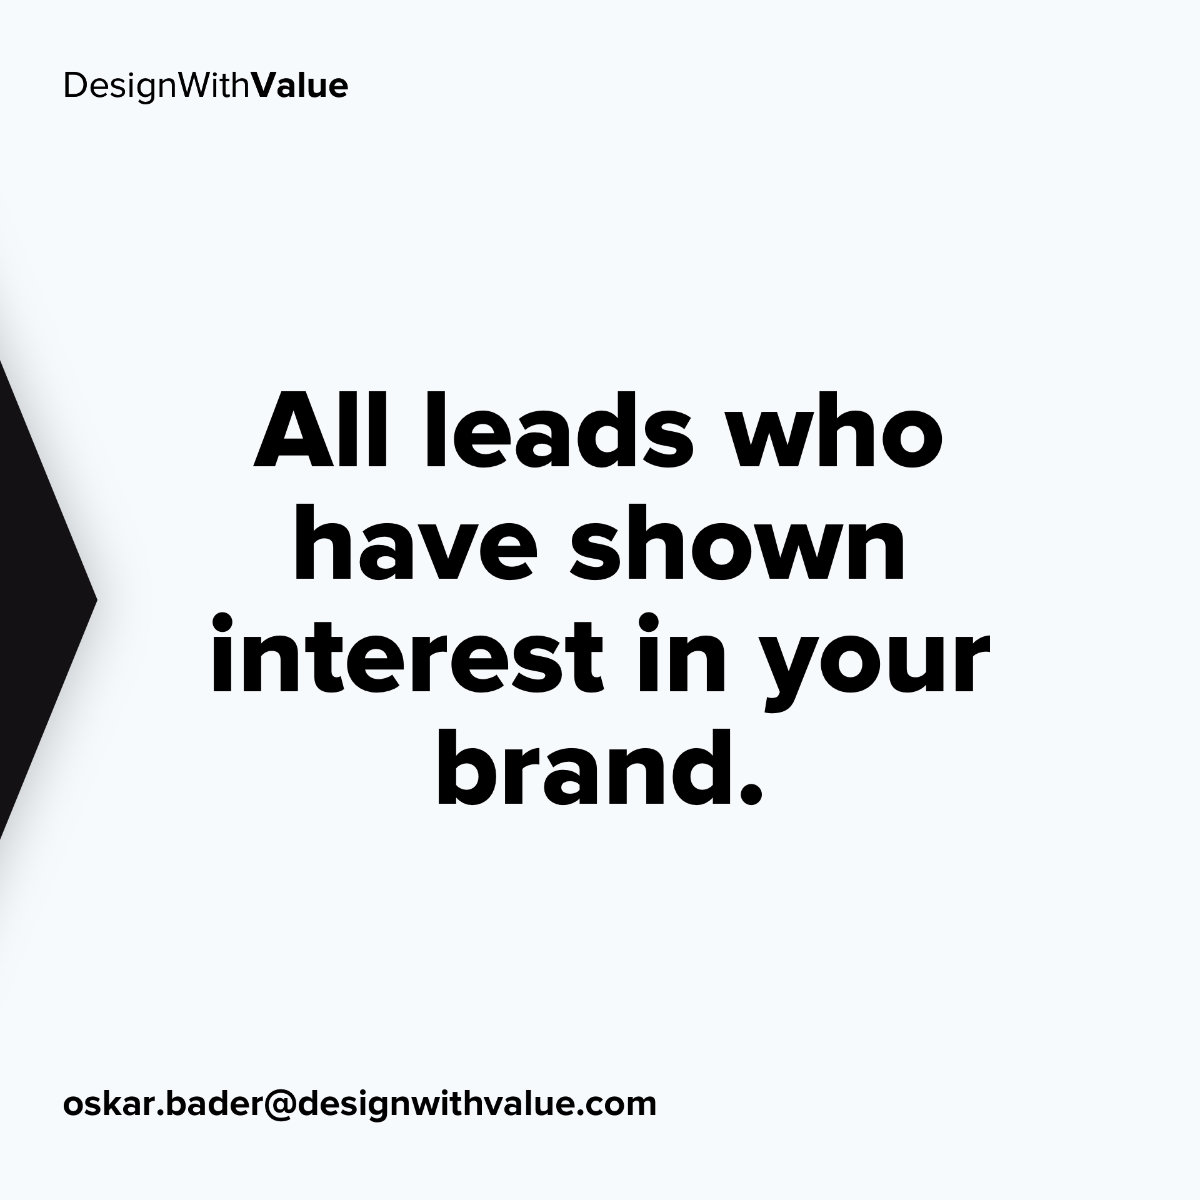 All leads who have shown interest in your brand